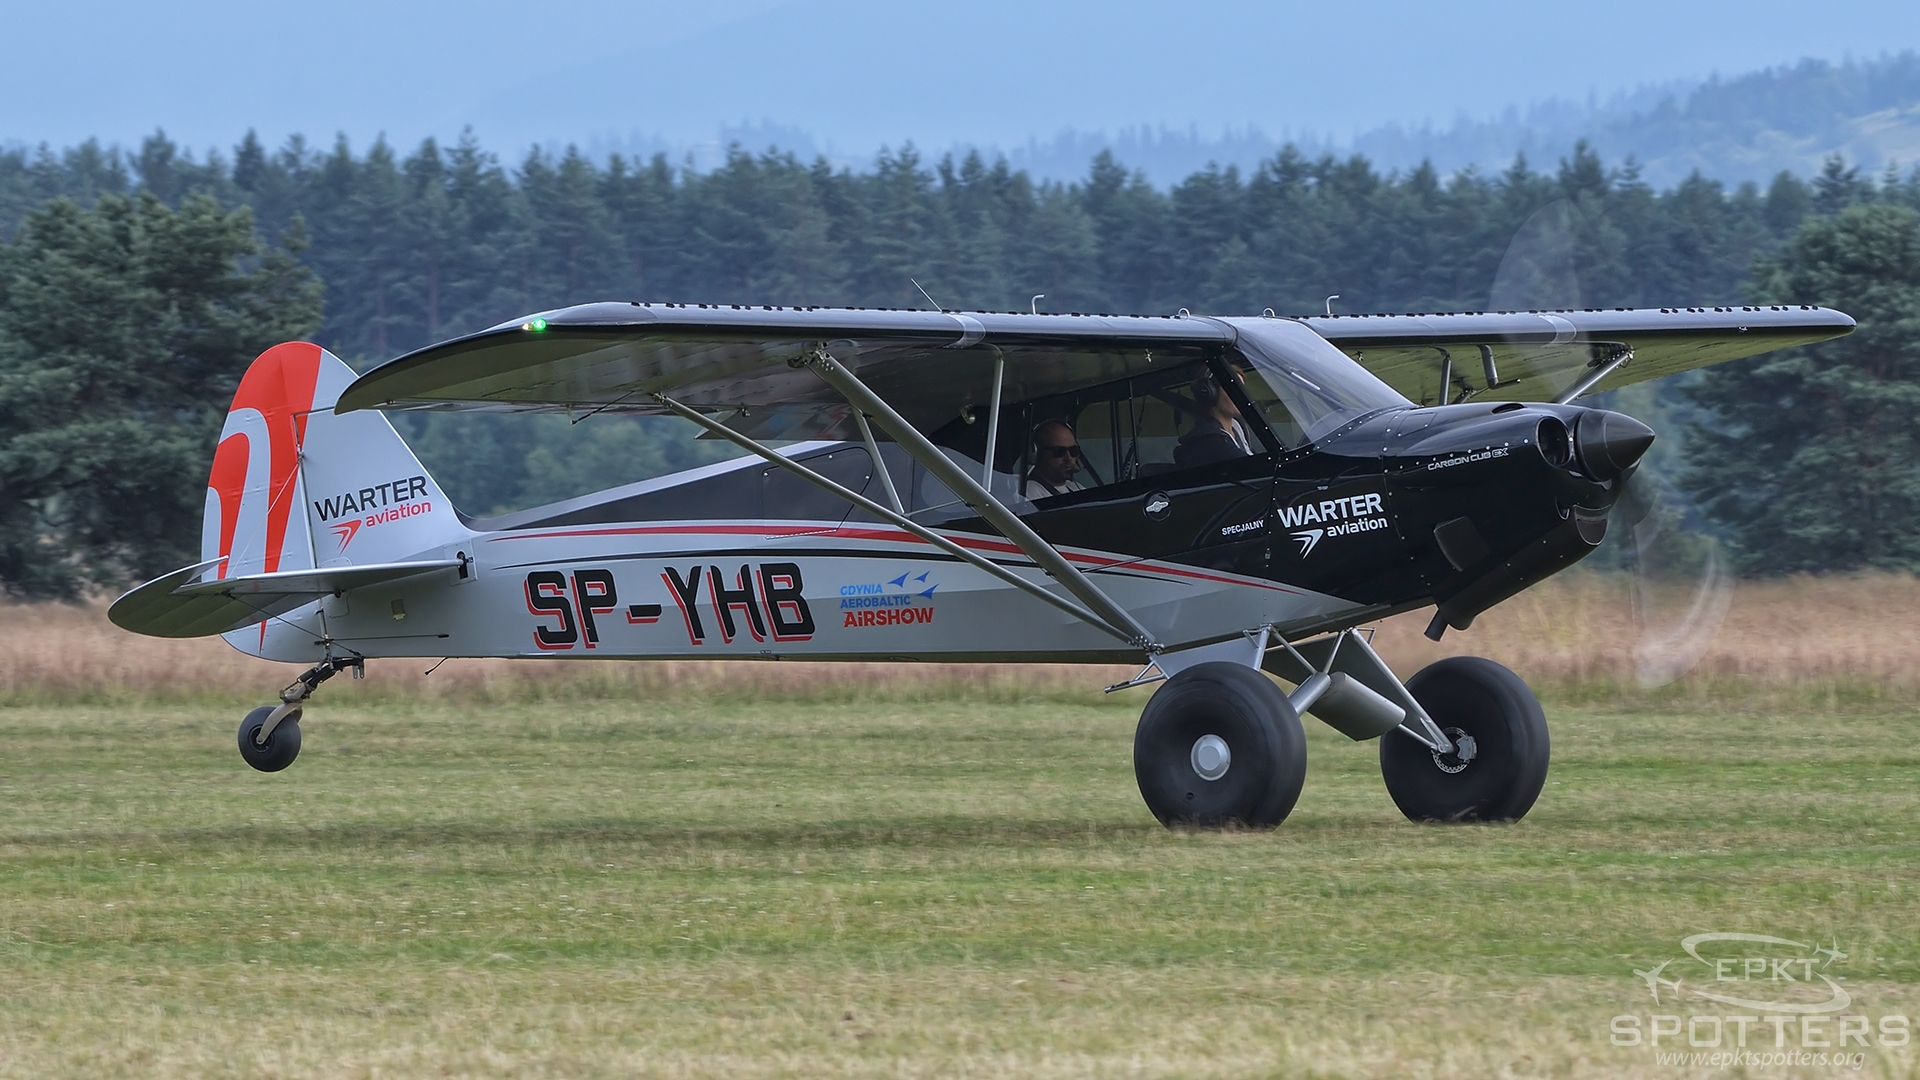 SP-YHB - CubCrafters Carbon Cub  (Private) / Nowy Targ - Nowy Targ Poland [EPNT/]